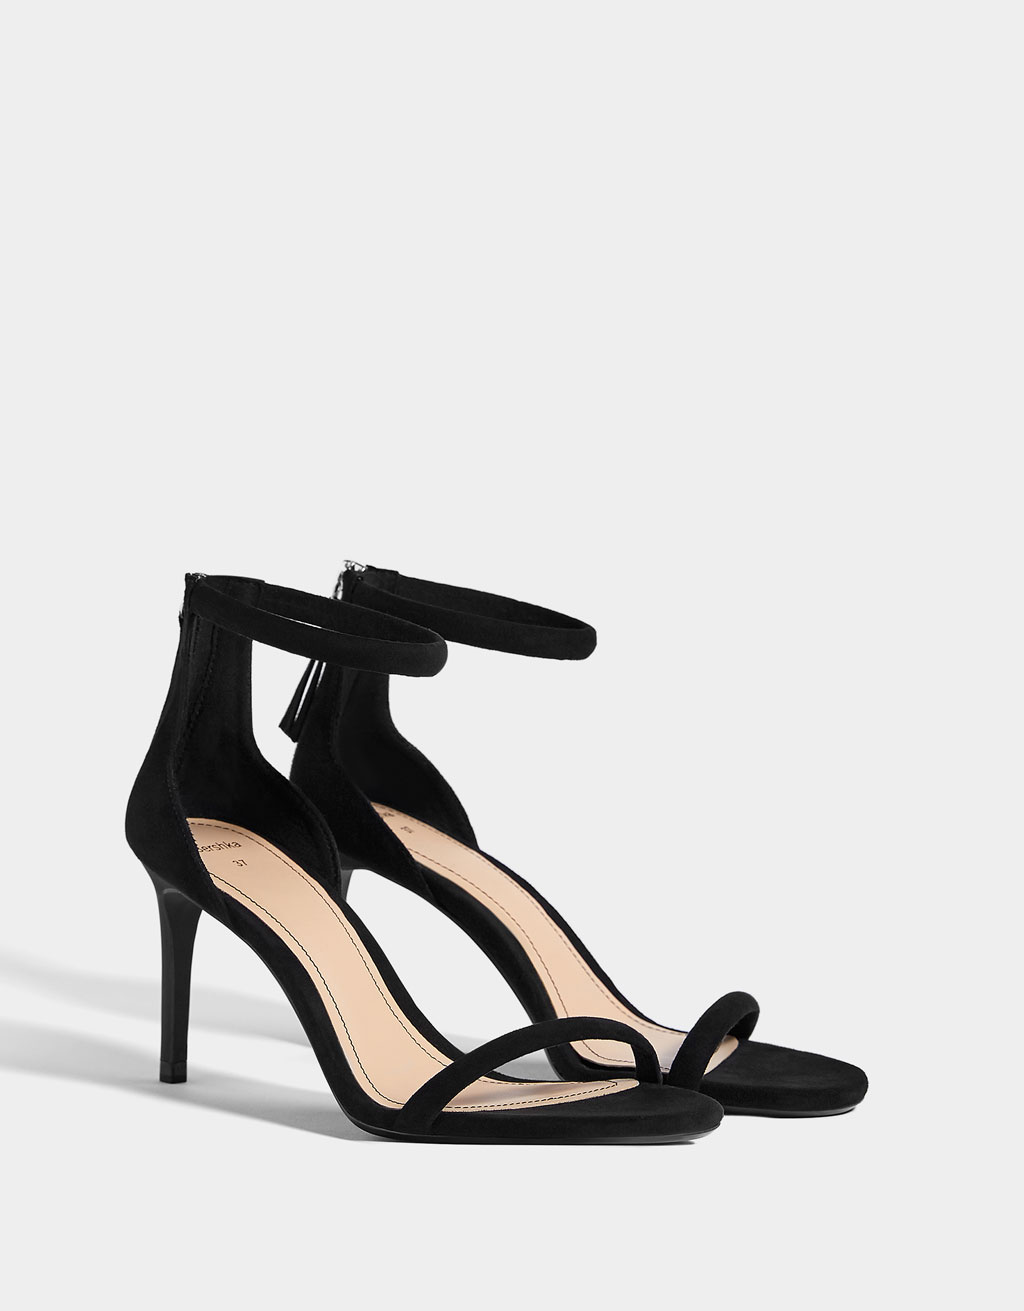 High heel sandals with tubular ankle strap